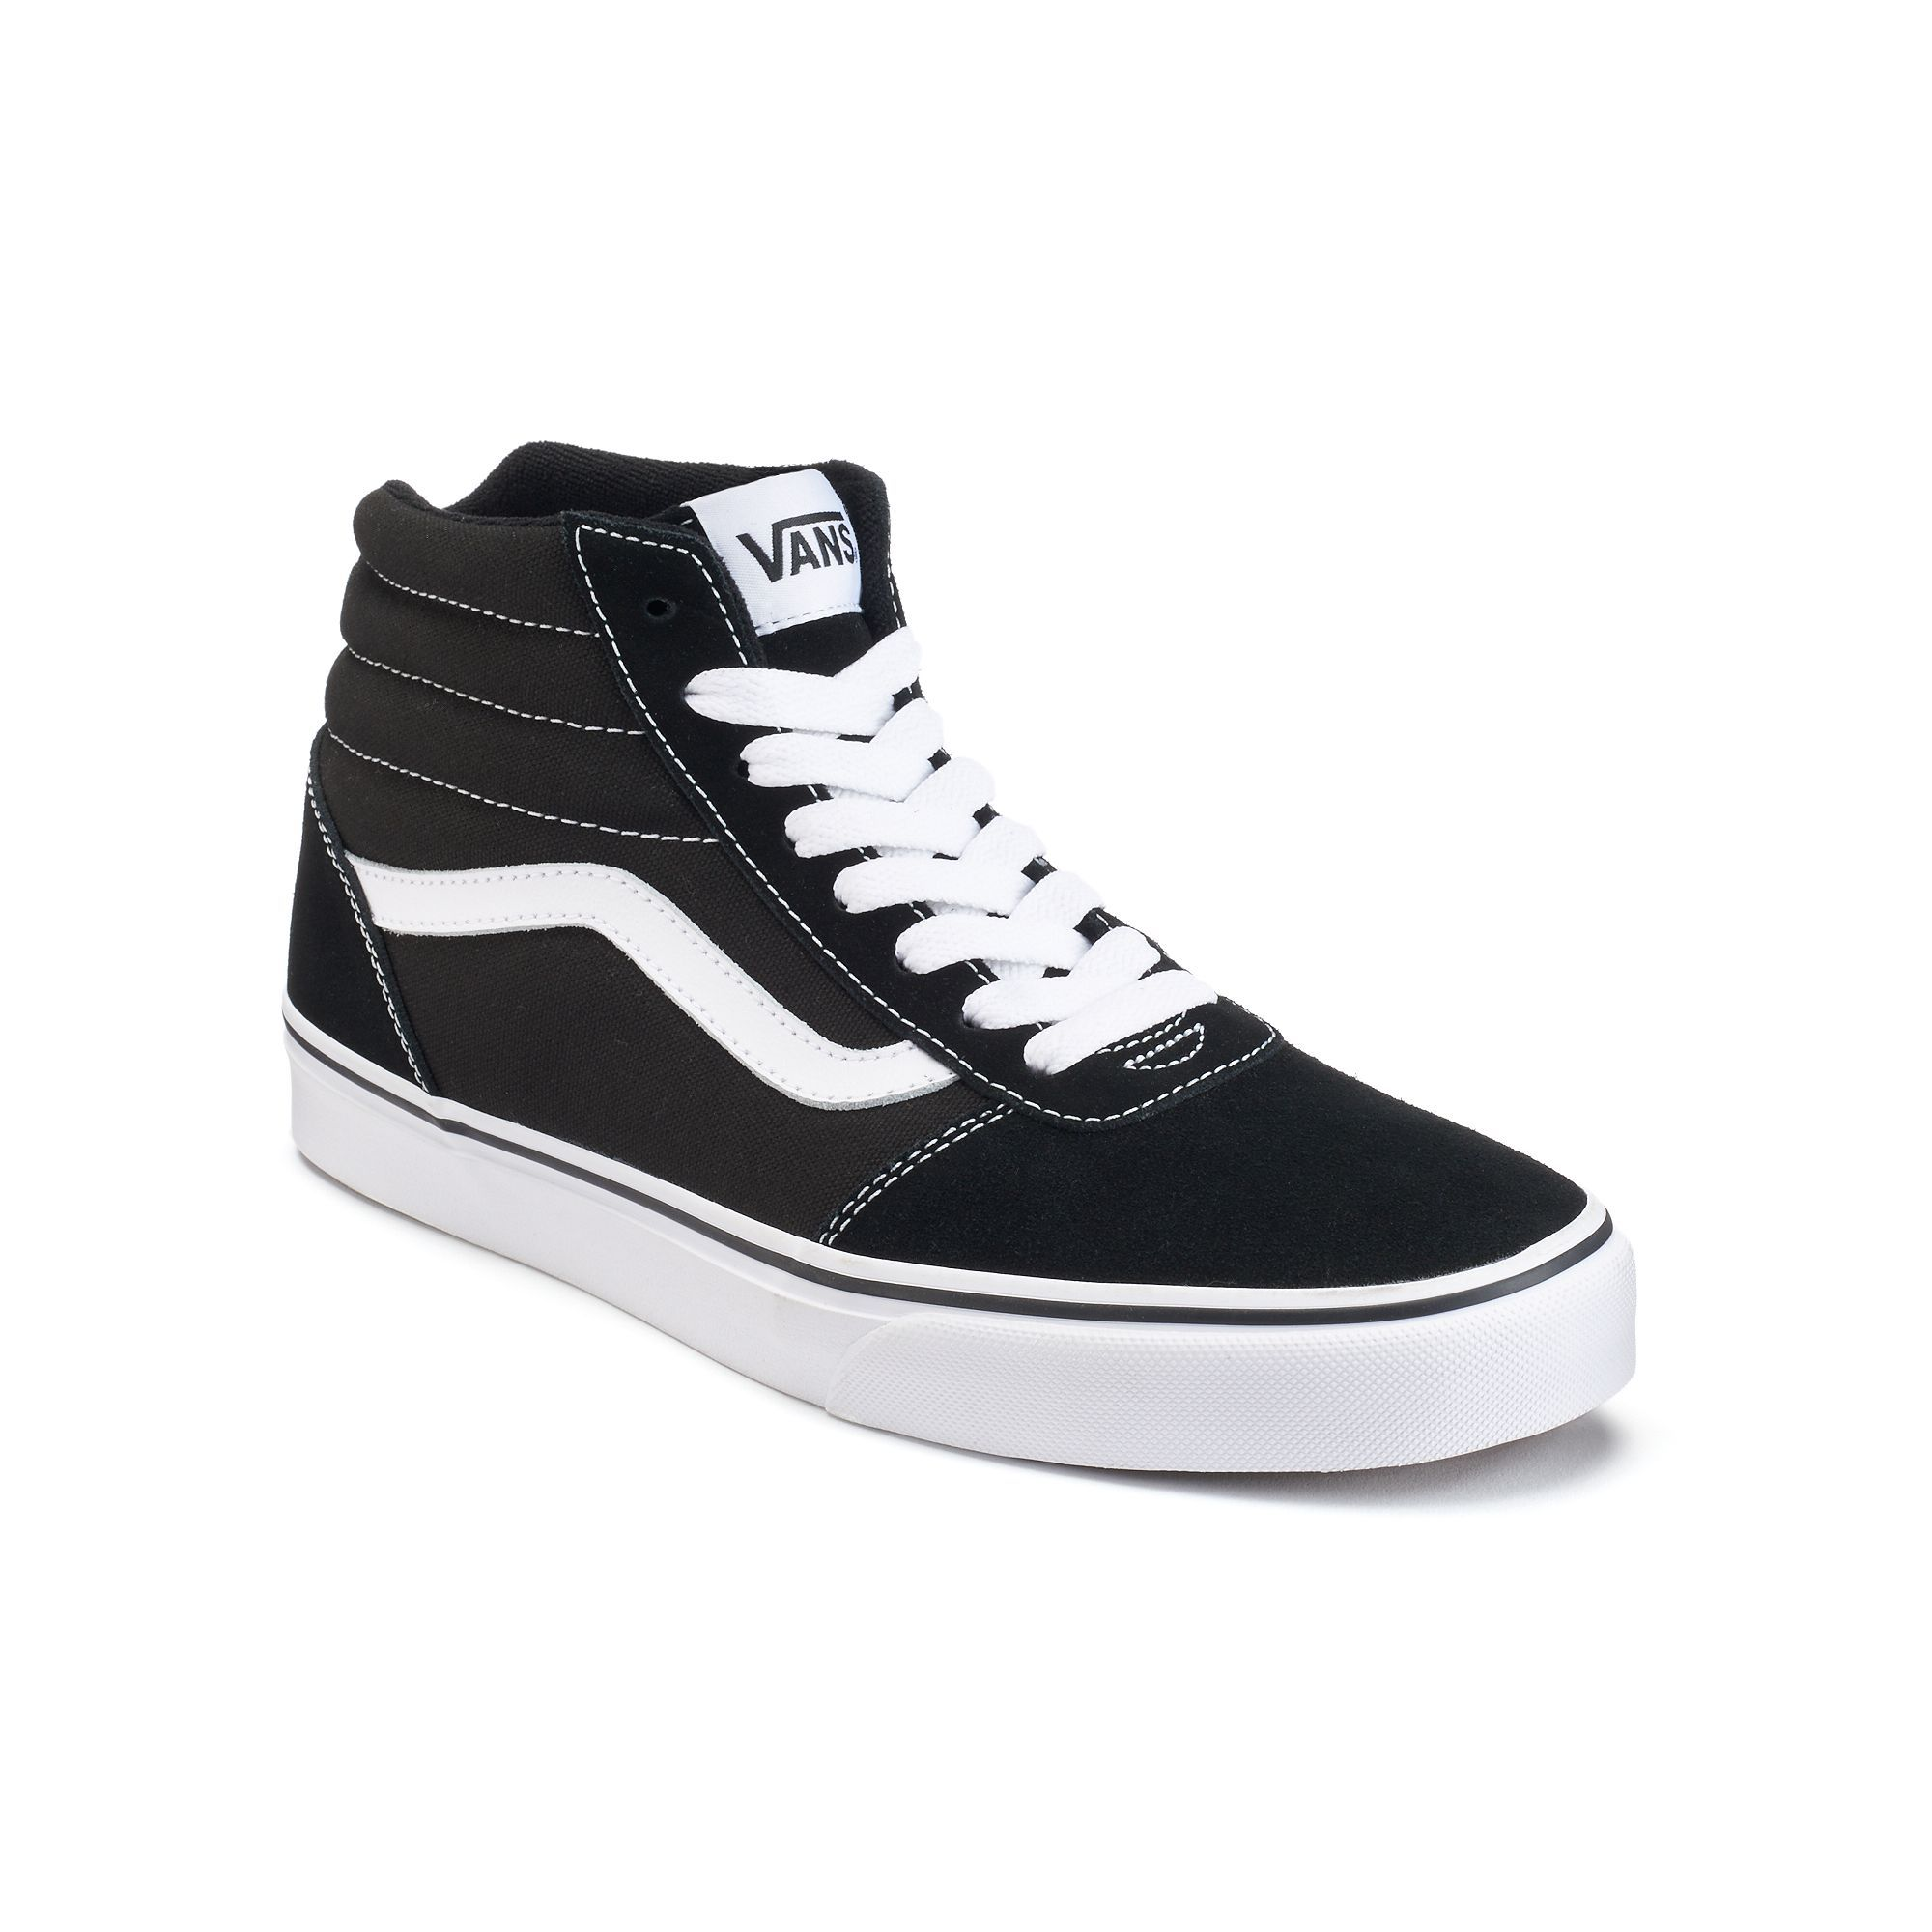 Vans Ward Hi Men's Suede Skate Shoes. Mens High TopsMens High Top ShoesBlack  High Top SneakersBlack ...